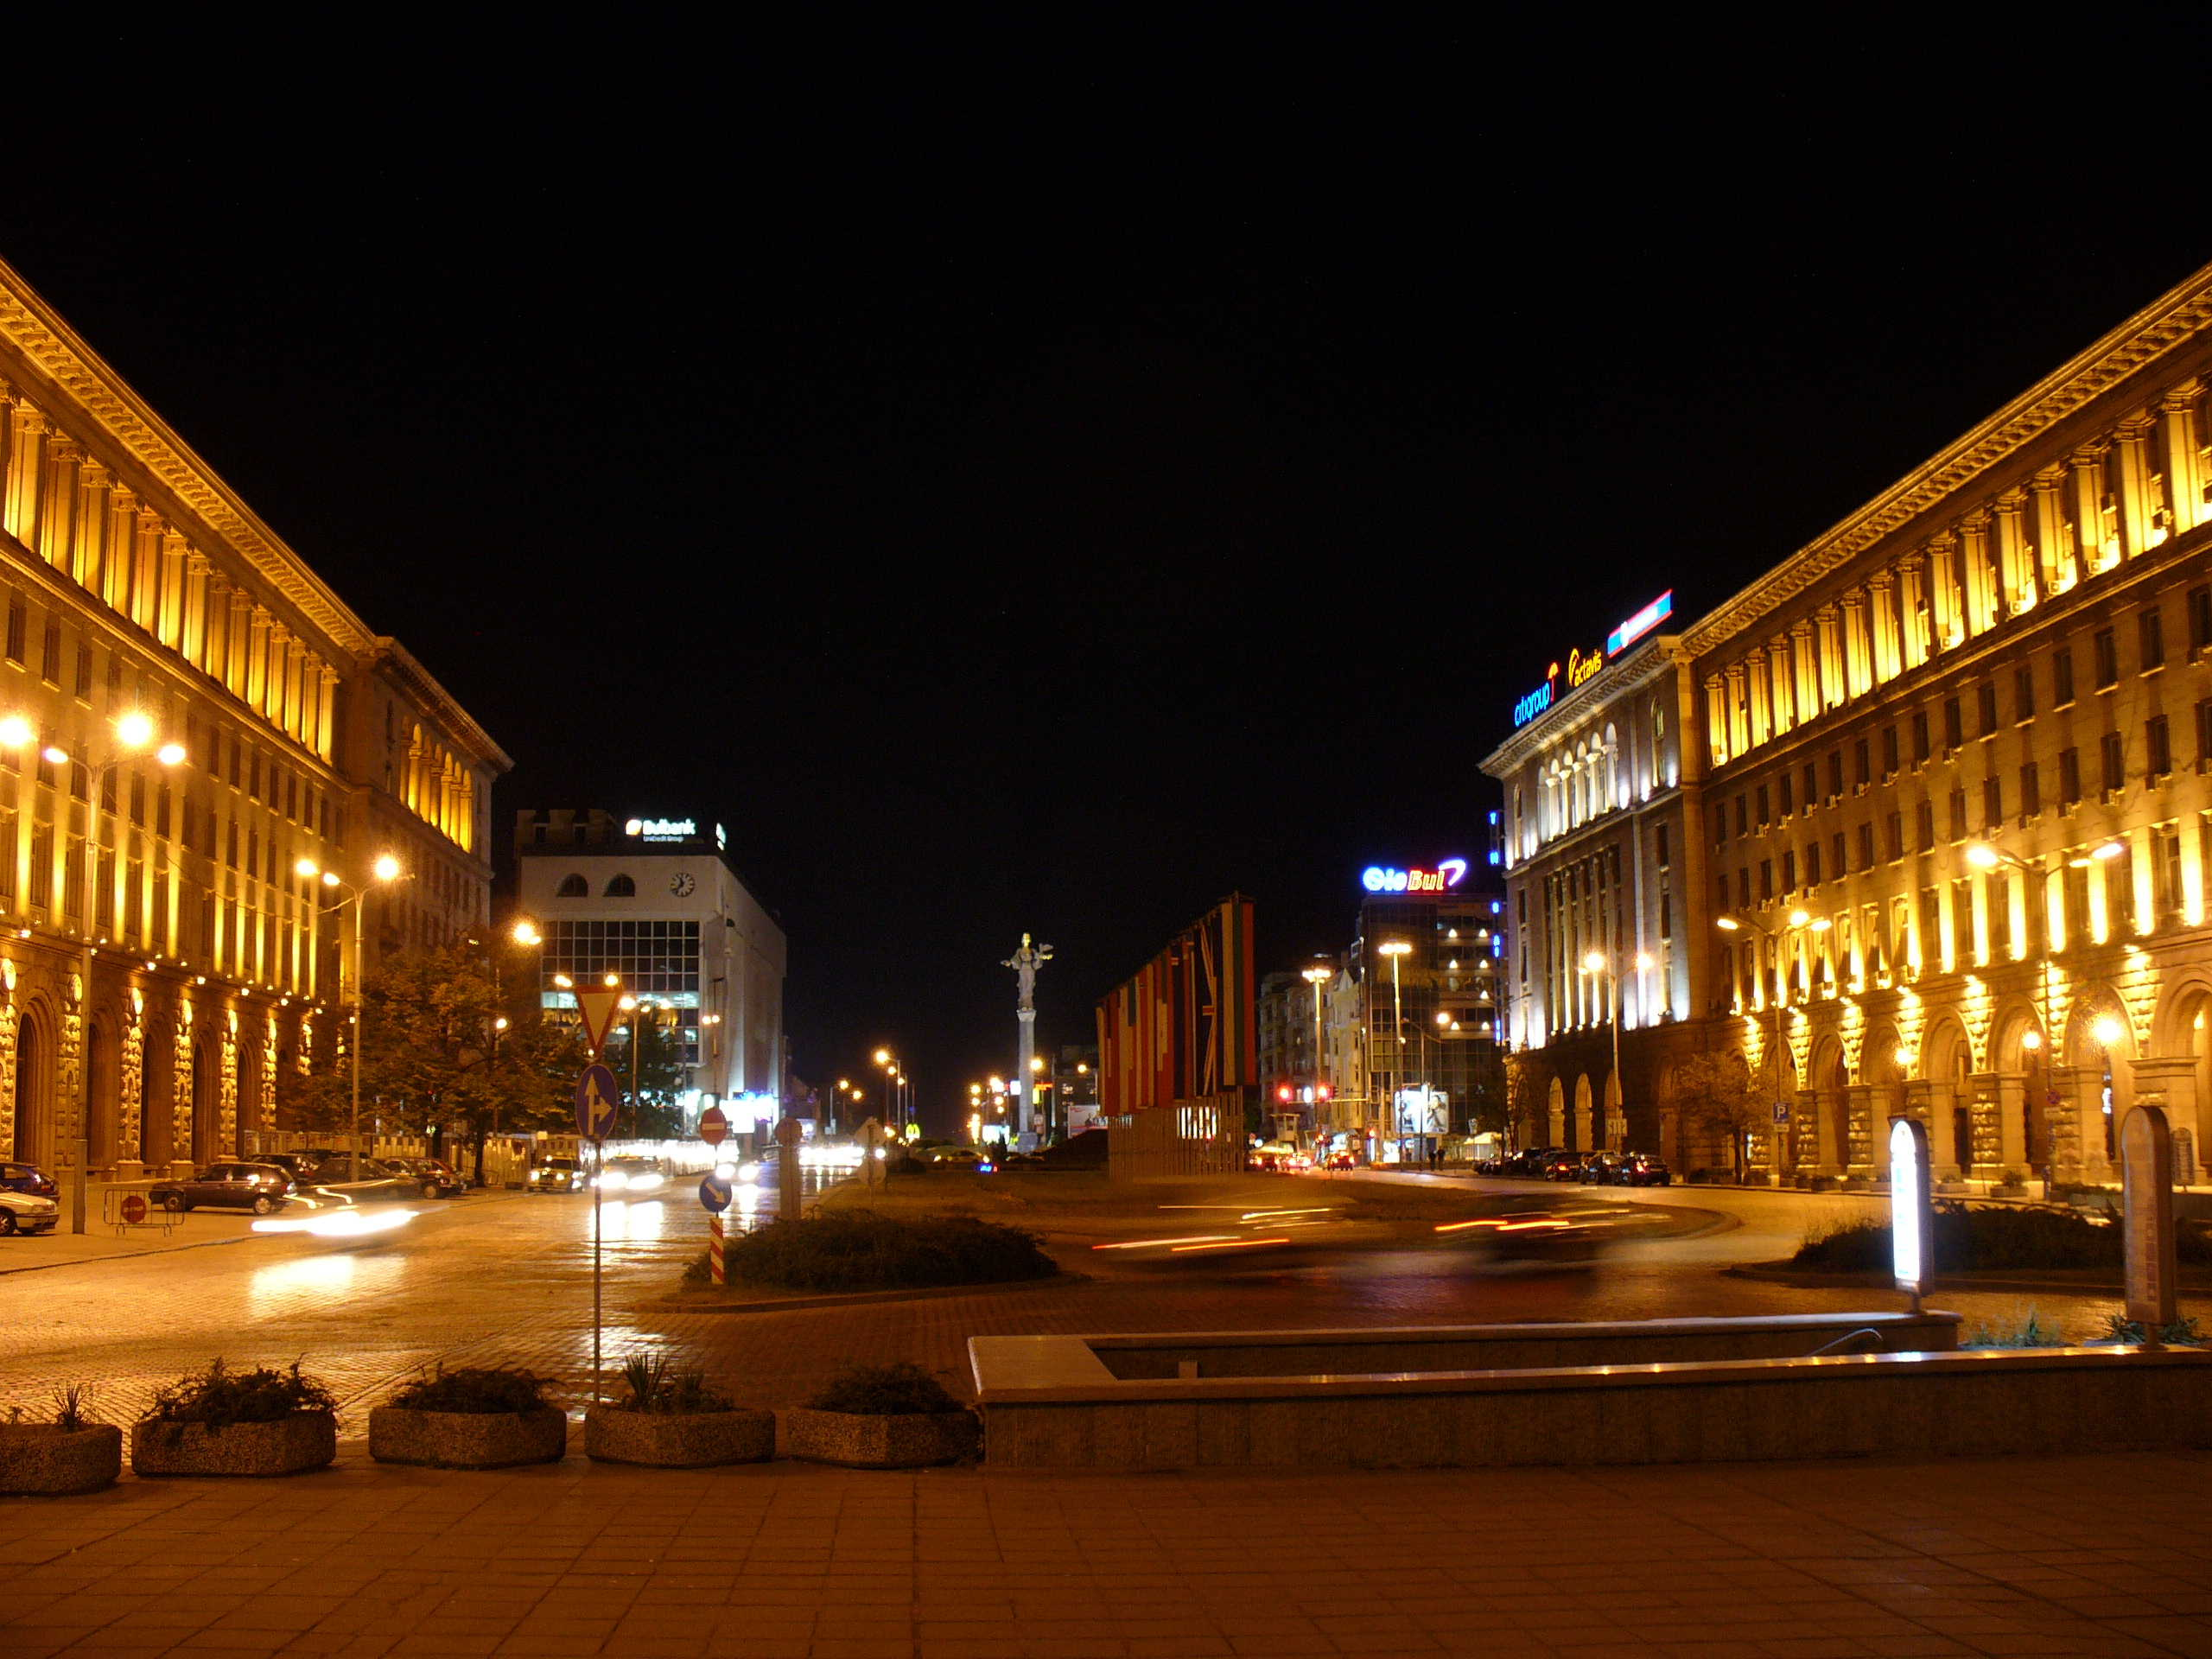 Full night personalized taxi service in Sofia, 4-5 hours